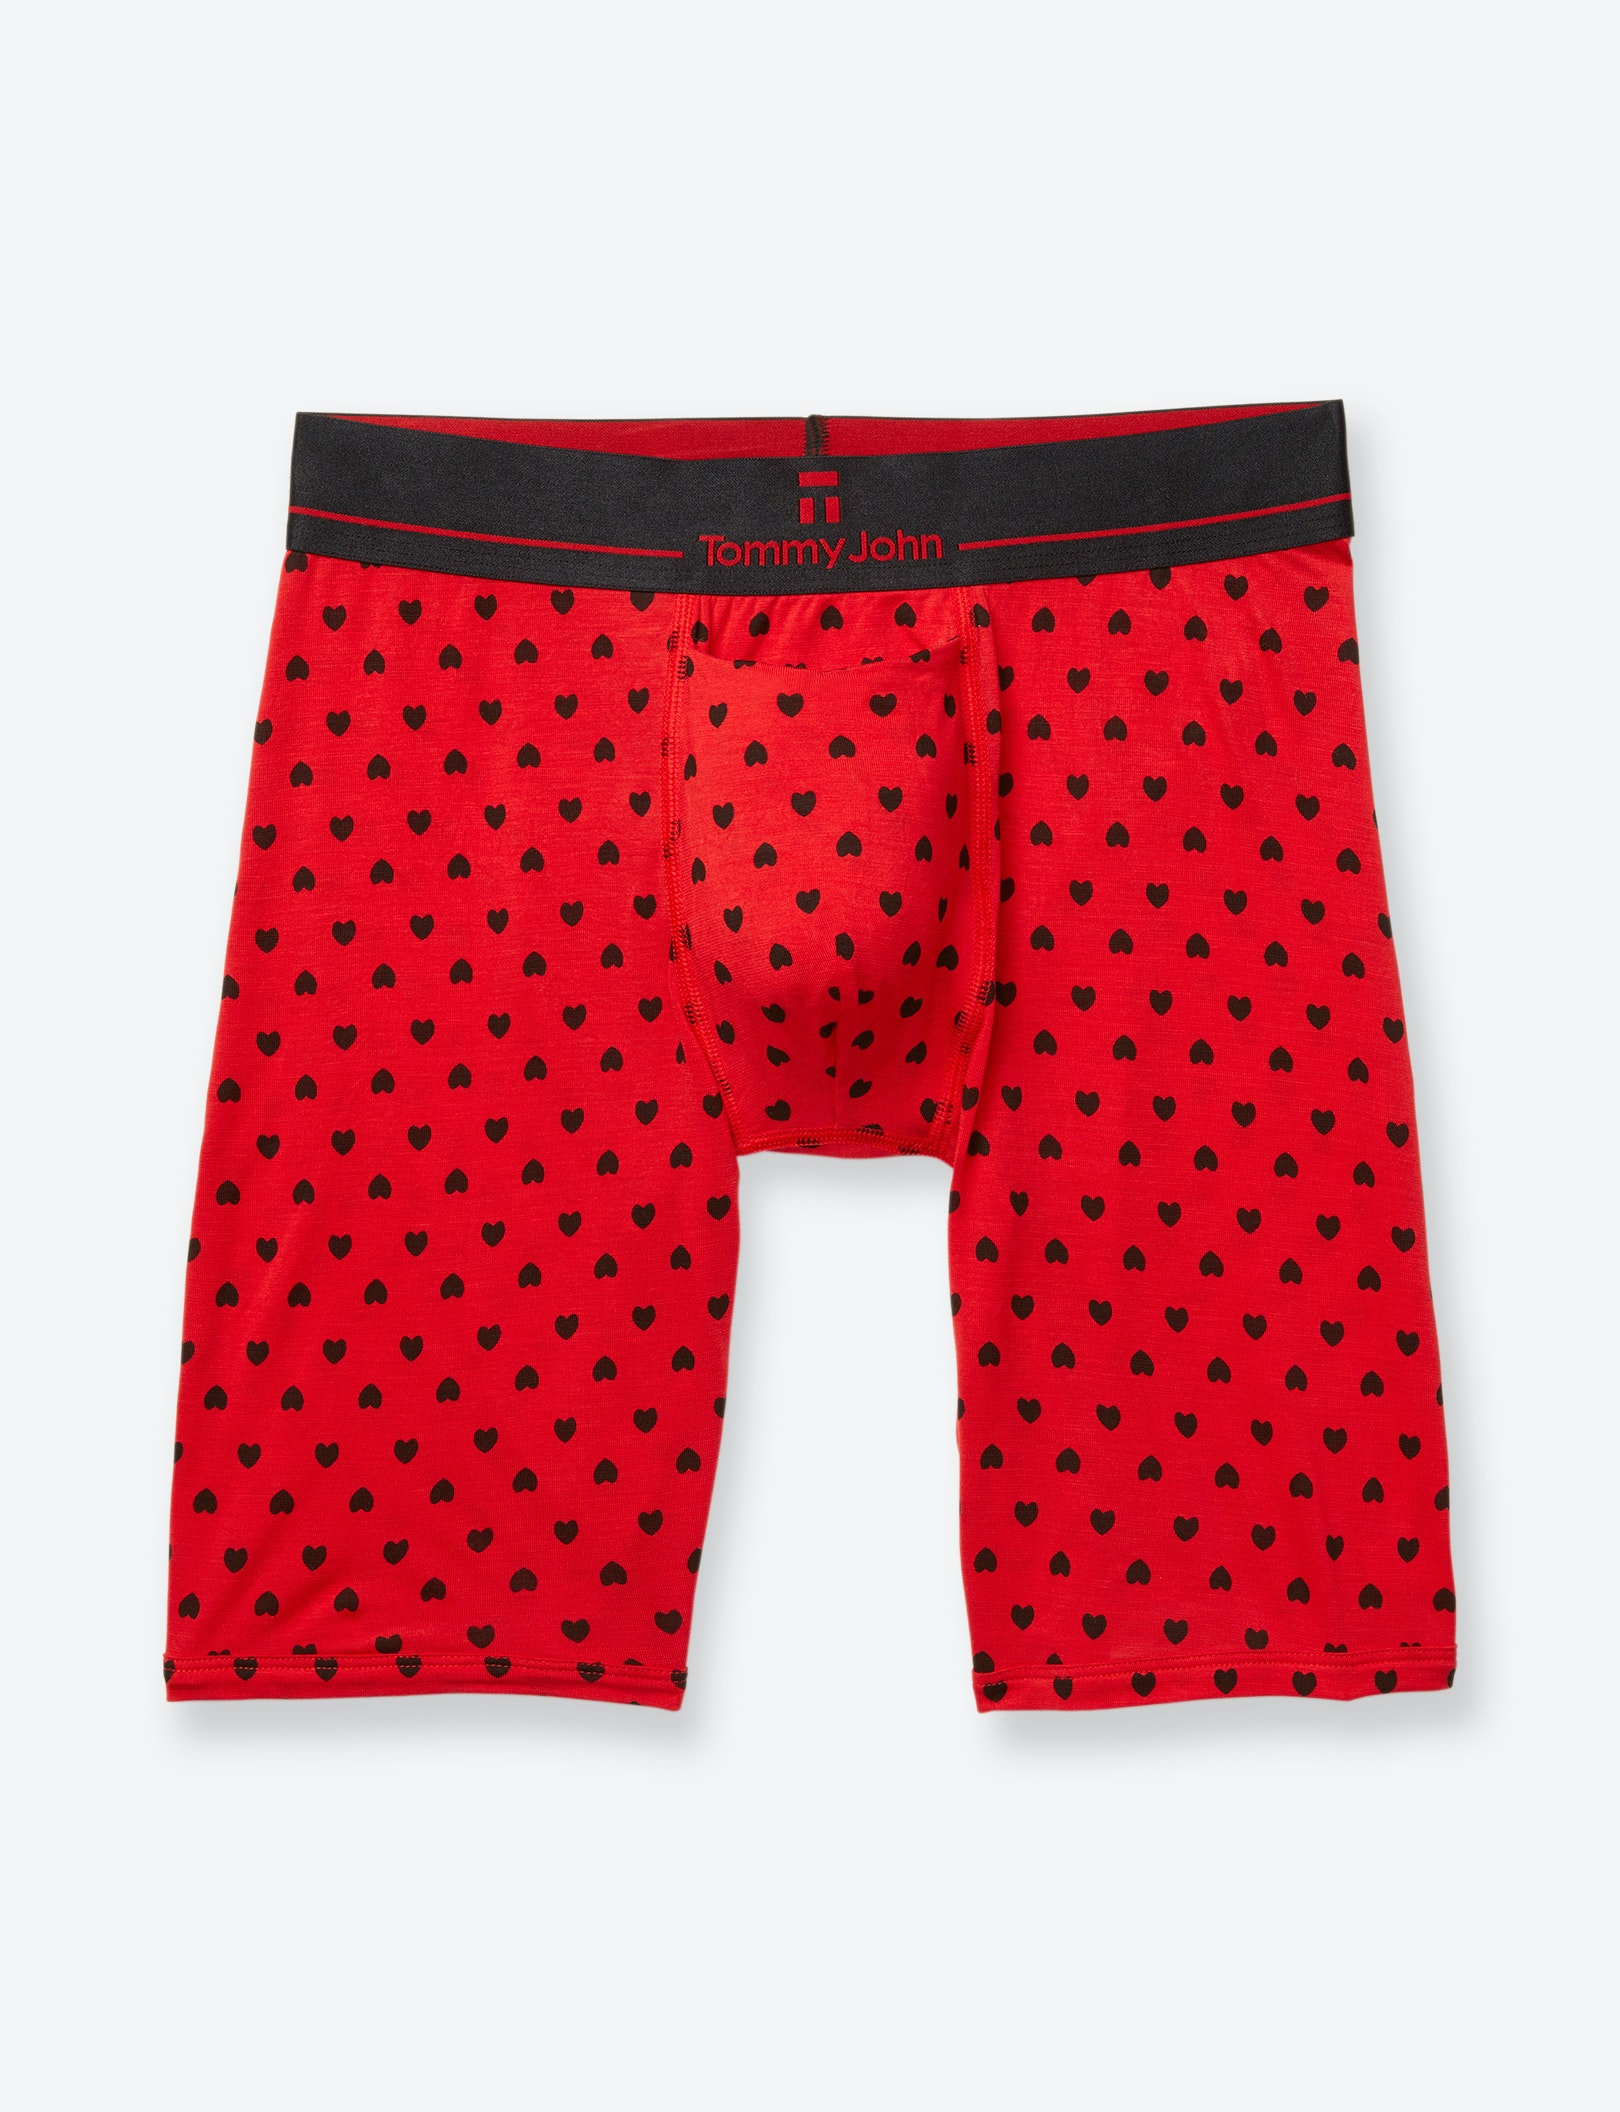 Valentines Day Second Skin Heart Boxer Brief (Soft Underwear) | Tommy John